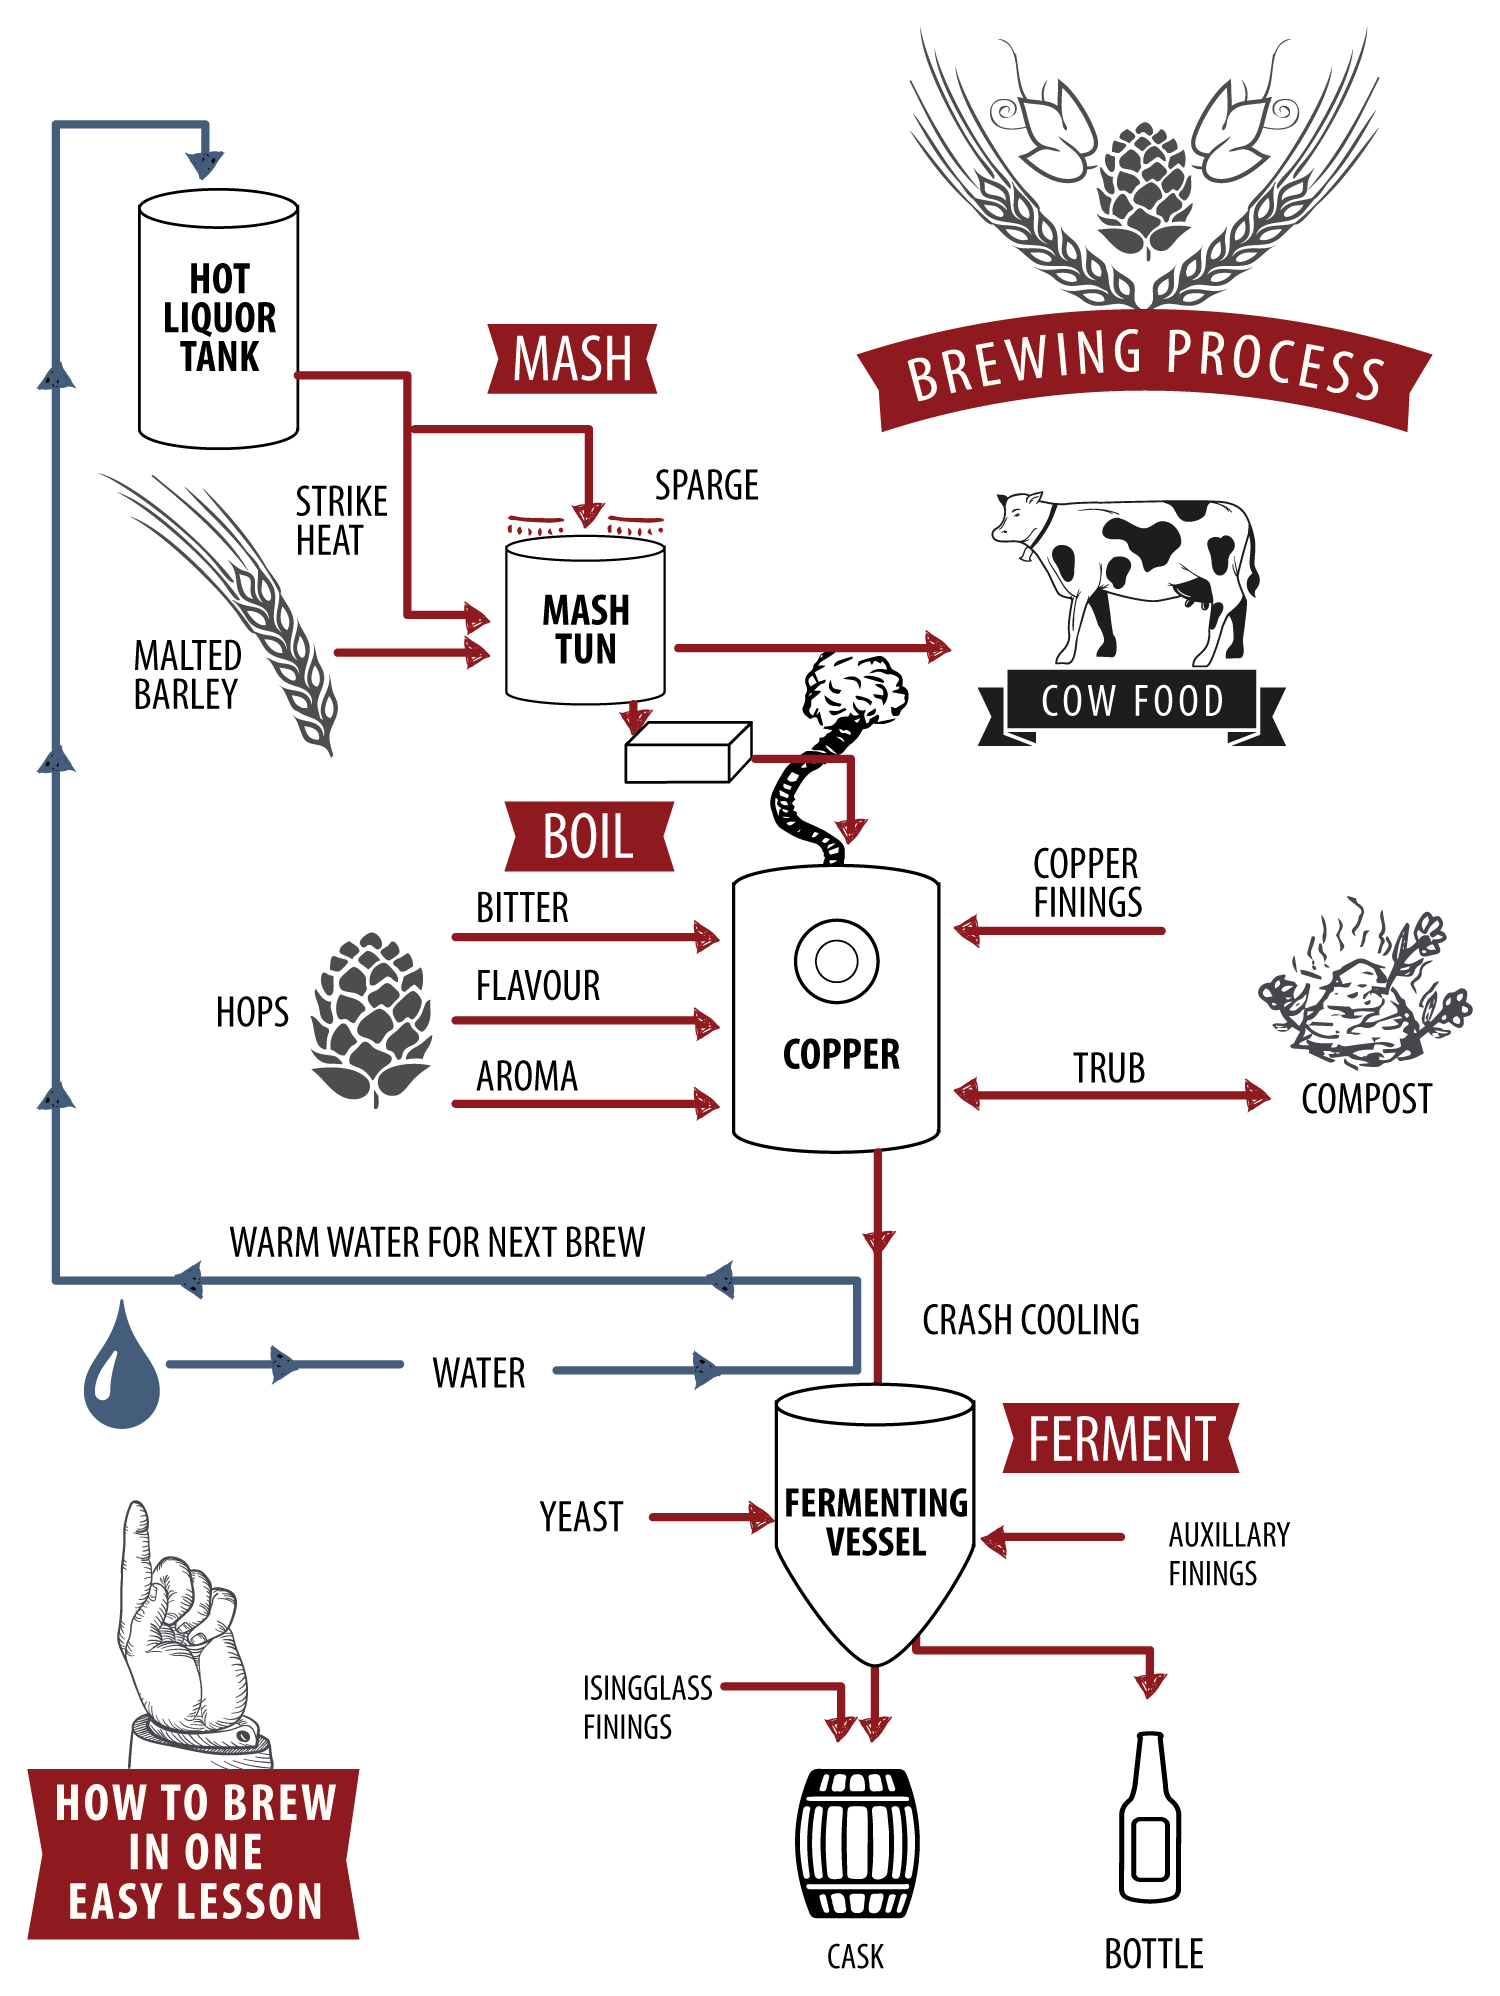 A diagram of the beer brewing process for those of you that are thinking about brewing your own beer